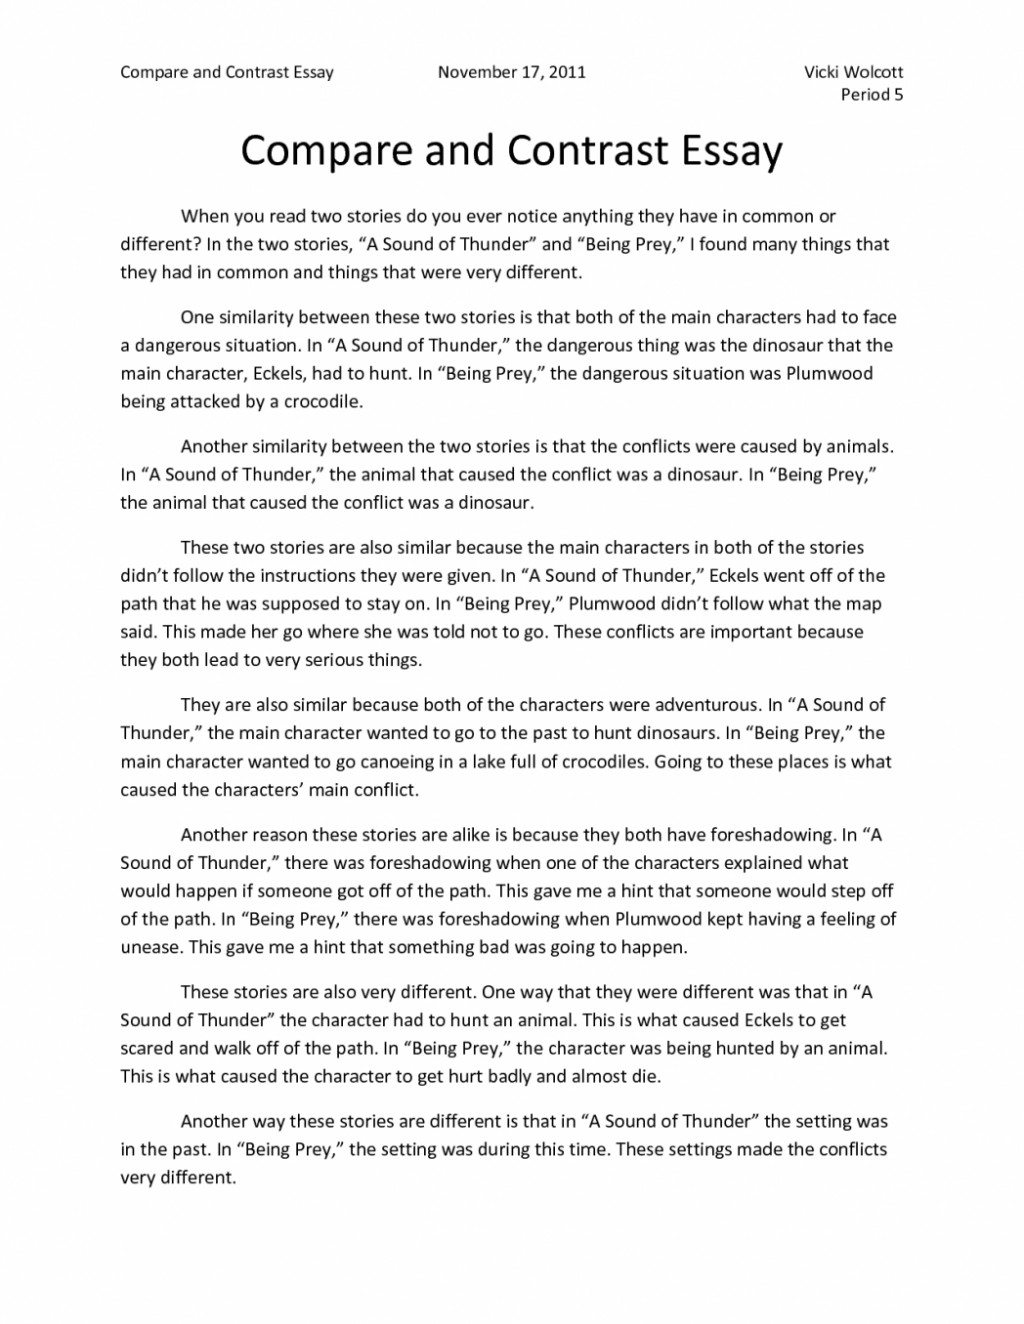 003 Conclusion For Compare And Contrastsay Writing Comparison Argumentative Research Paper Example Contrast Science Pdf Examples Outline Mla Apa History Scientific 1048x1356 Striking How To Write Essay A Good Introduction Essays Large